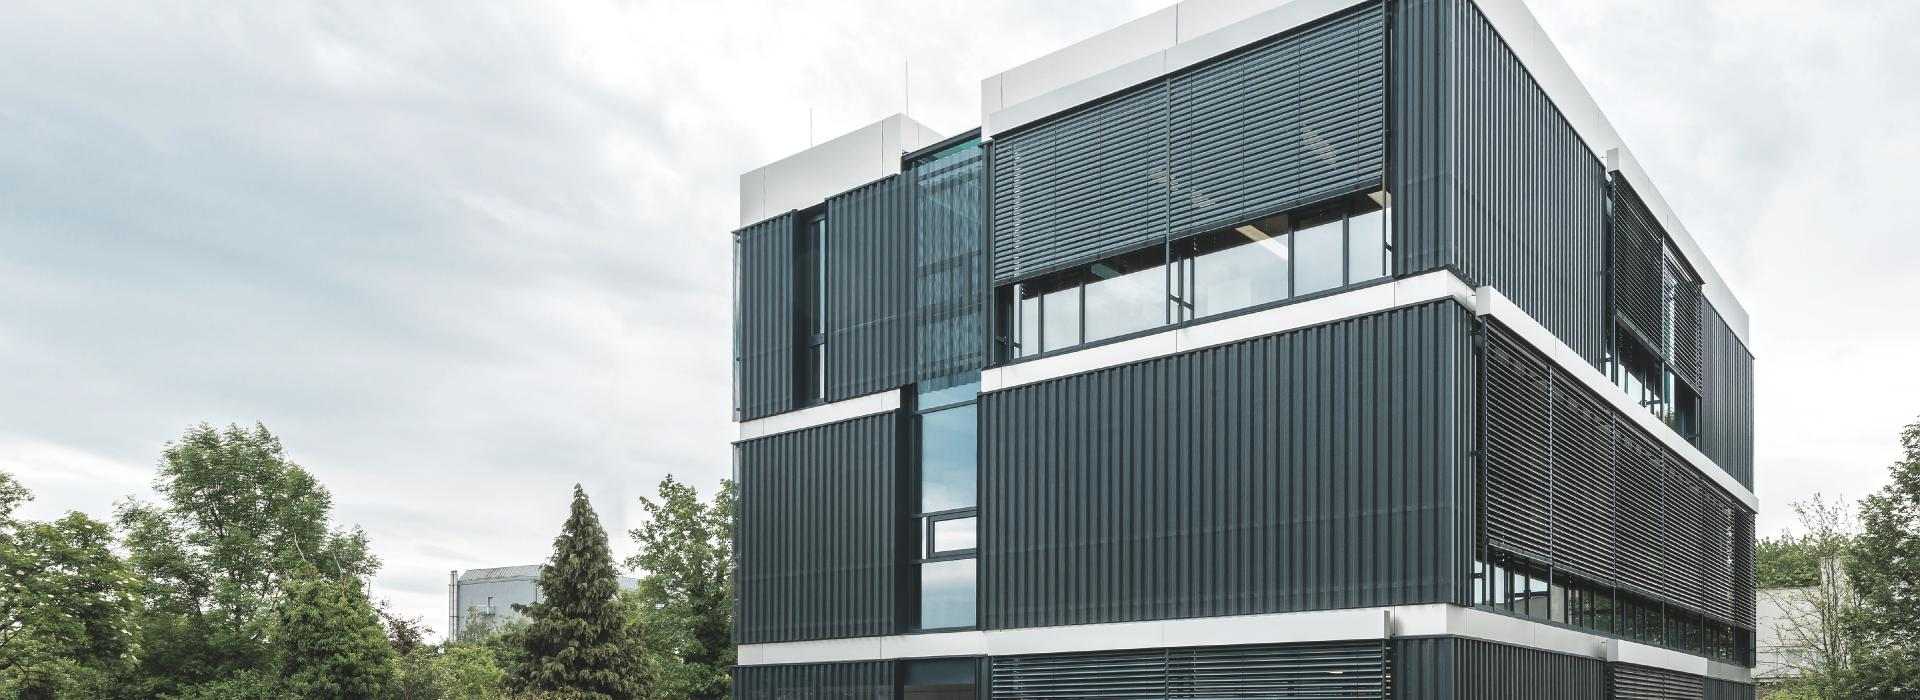 Modern office building with façade venetian blinds by daylight